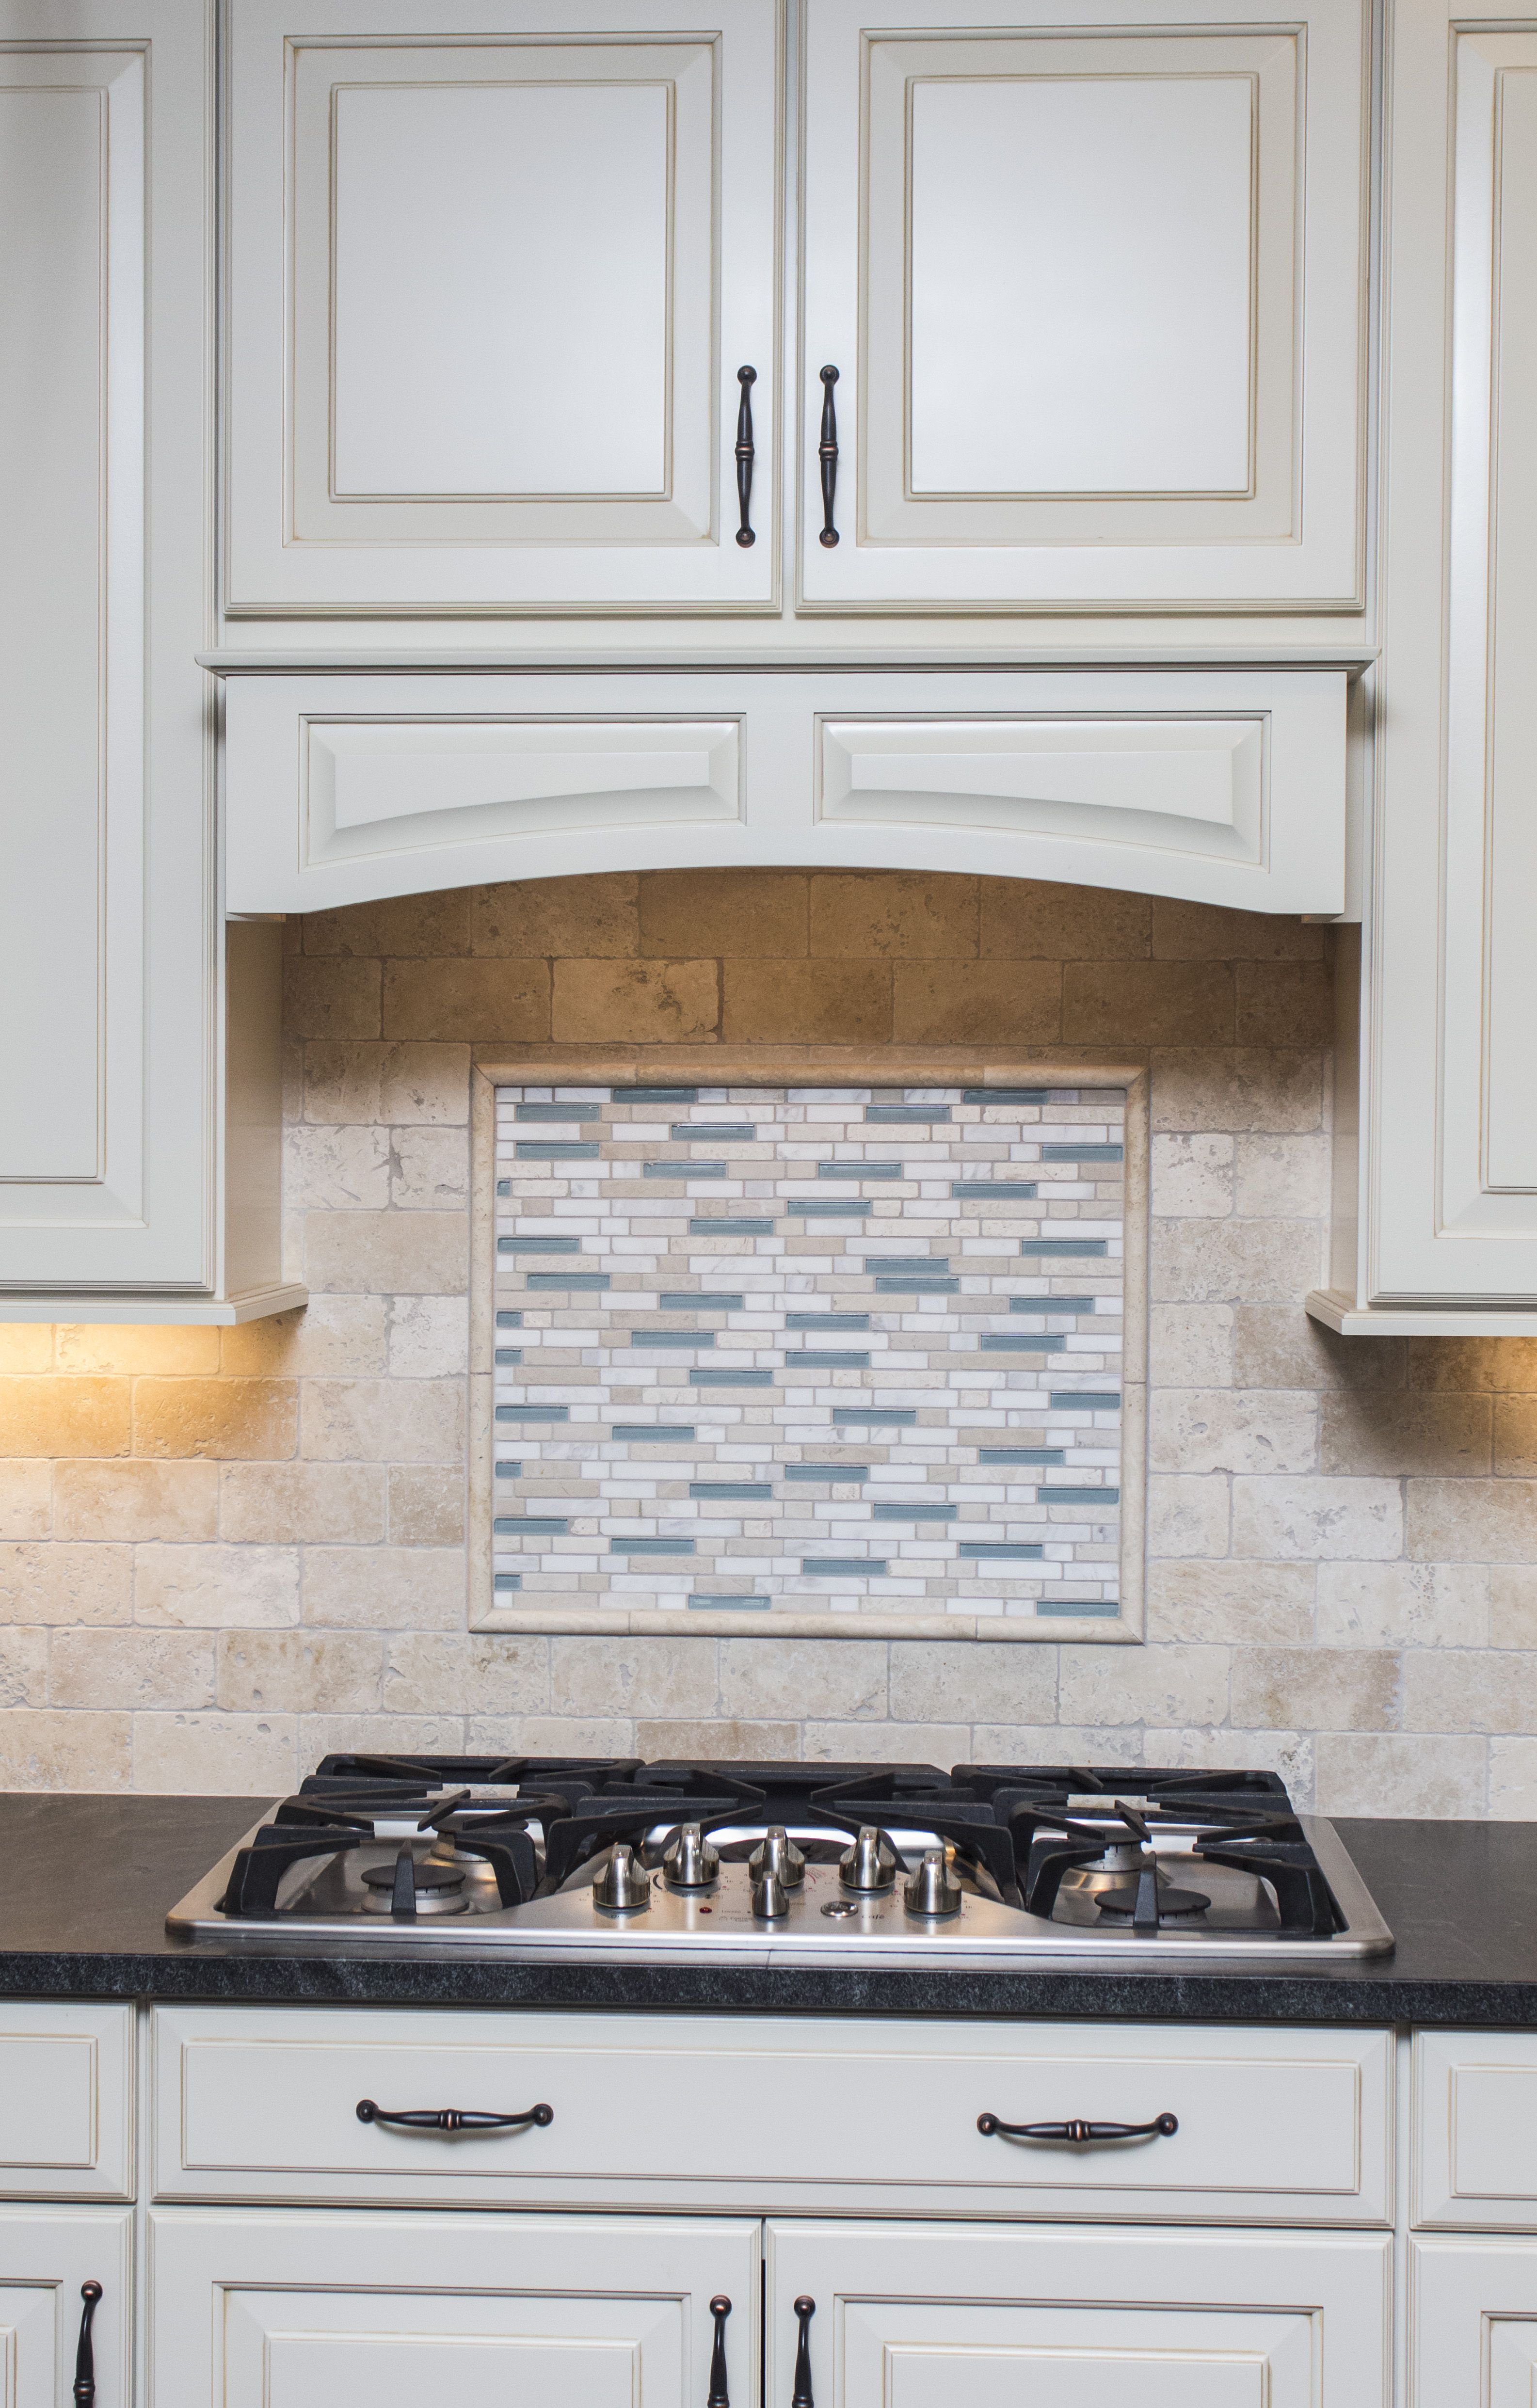 Black Granite · Gourmet · Gourmet New Build Kitchen Located In Dighton ,MA.  Featuring Cream Cabinetry, Grey Island